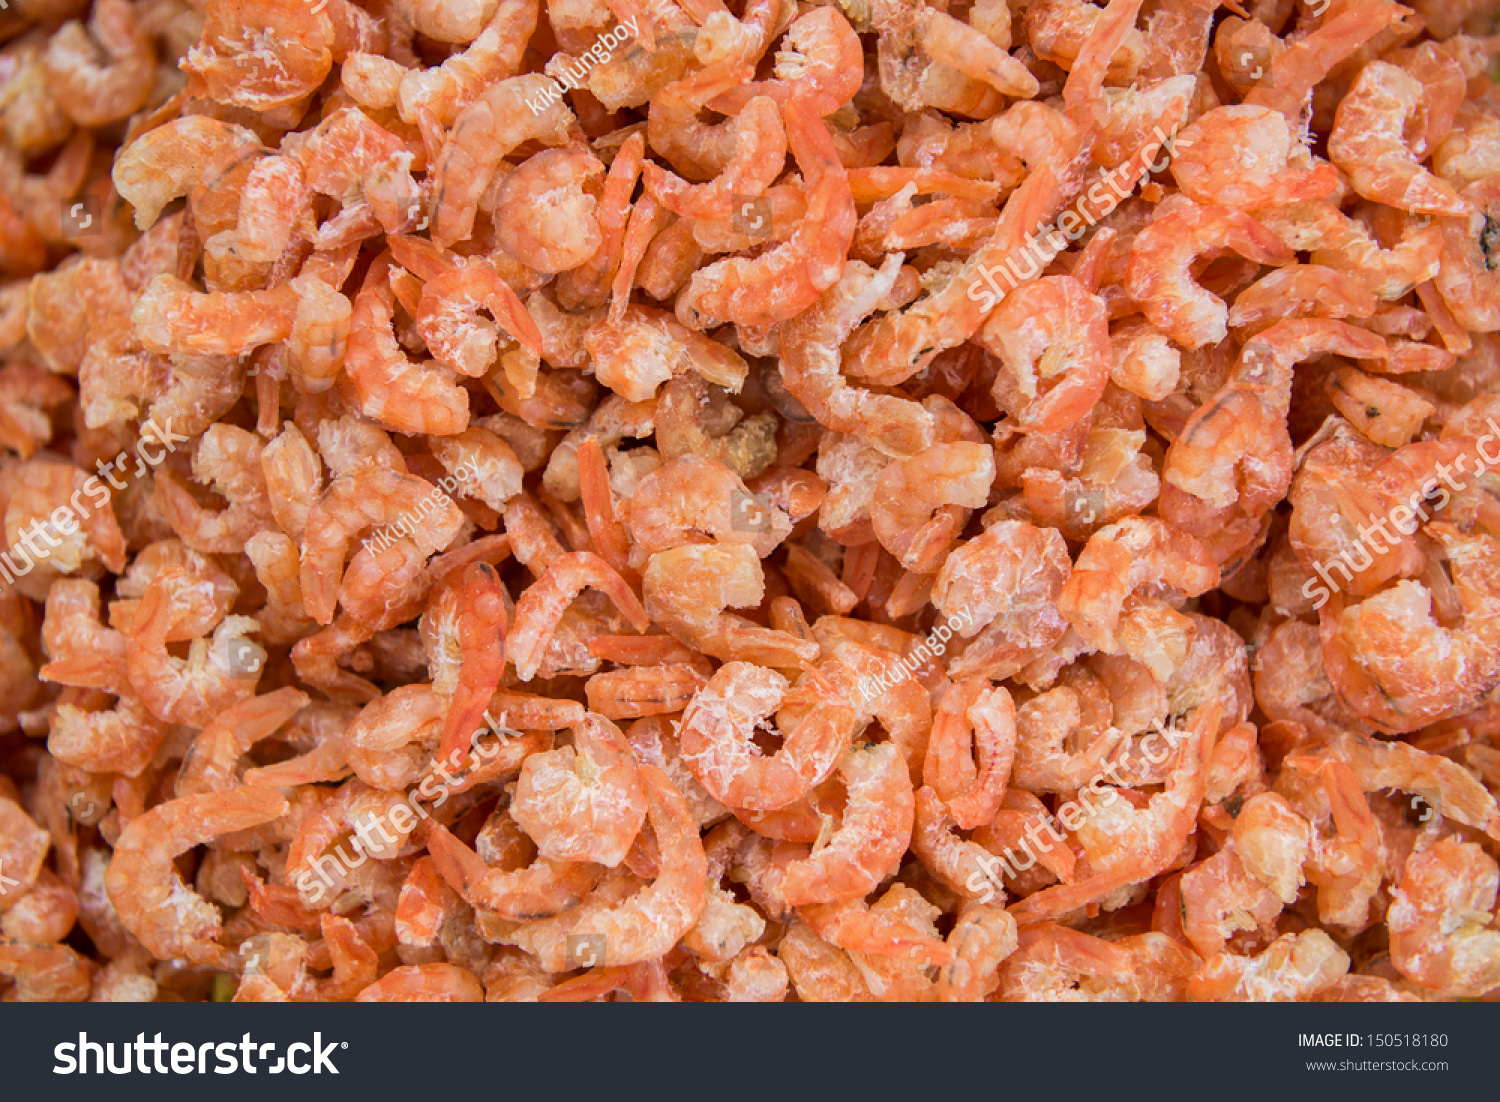 Small Dried Shrimp For Cooking At Market Stock Photo 150518180 : Shutterstock